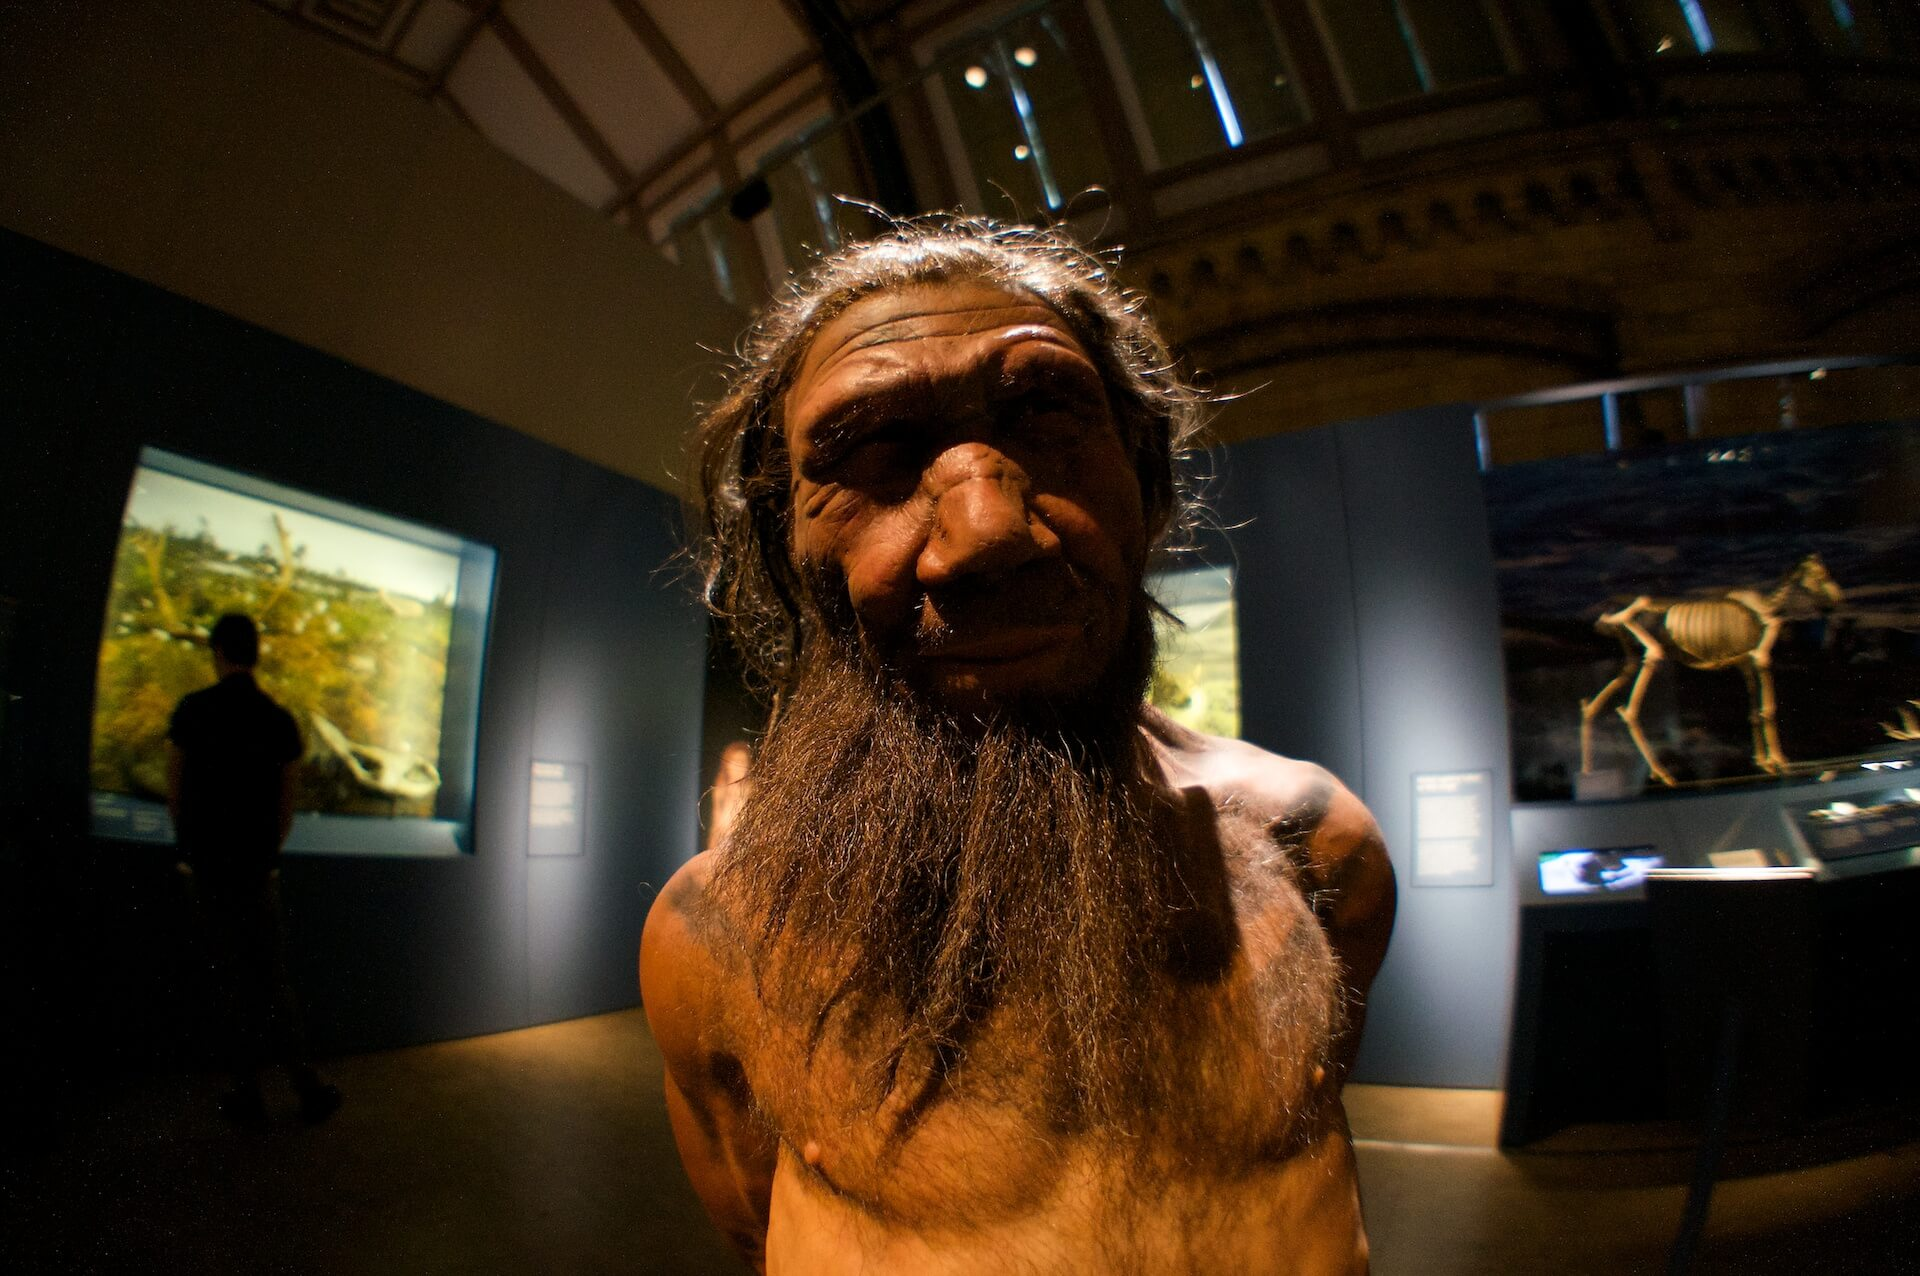 2-26-2019 neanderthal dna still runs in our genomes complicating the story of our origins